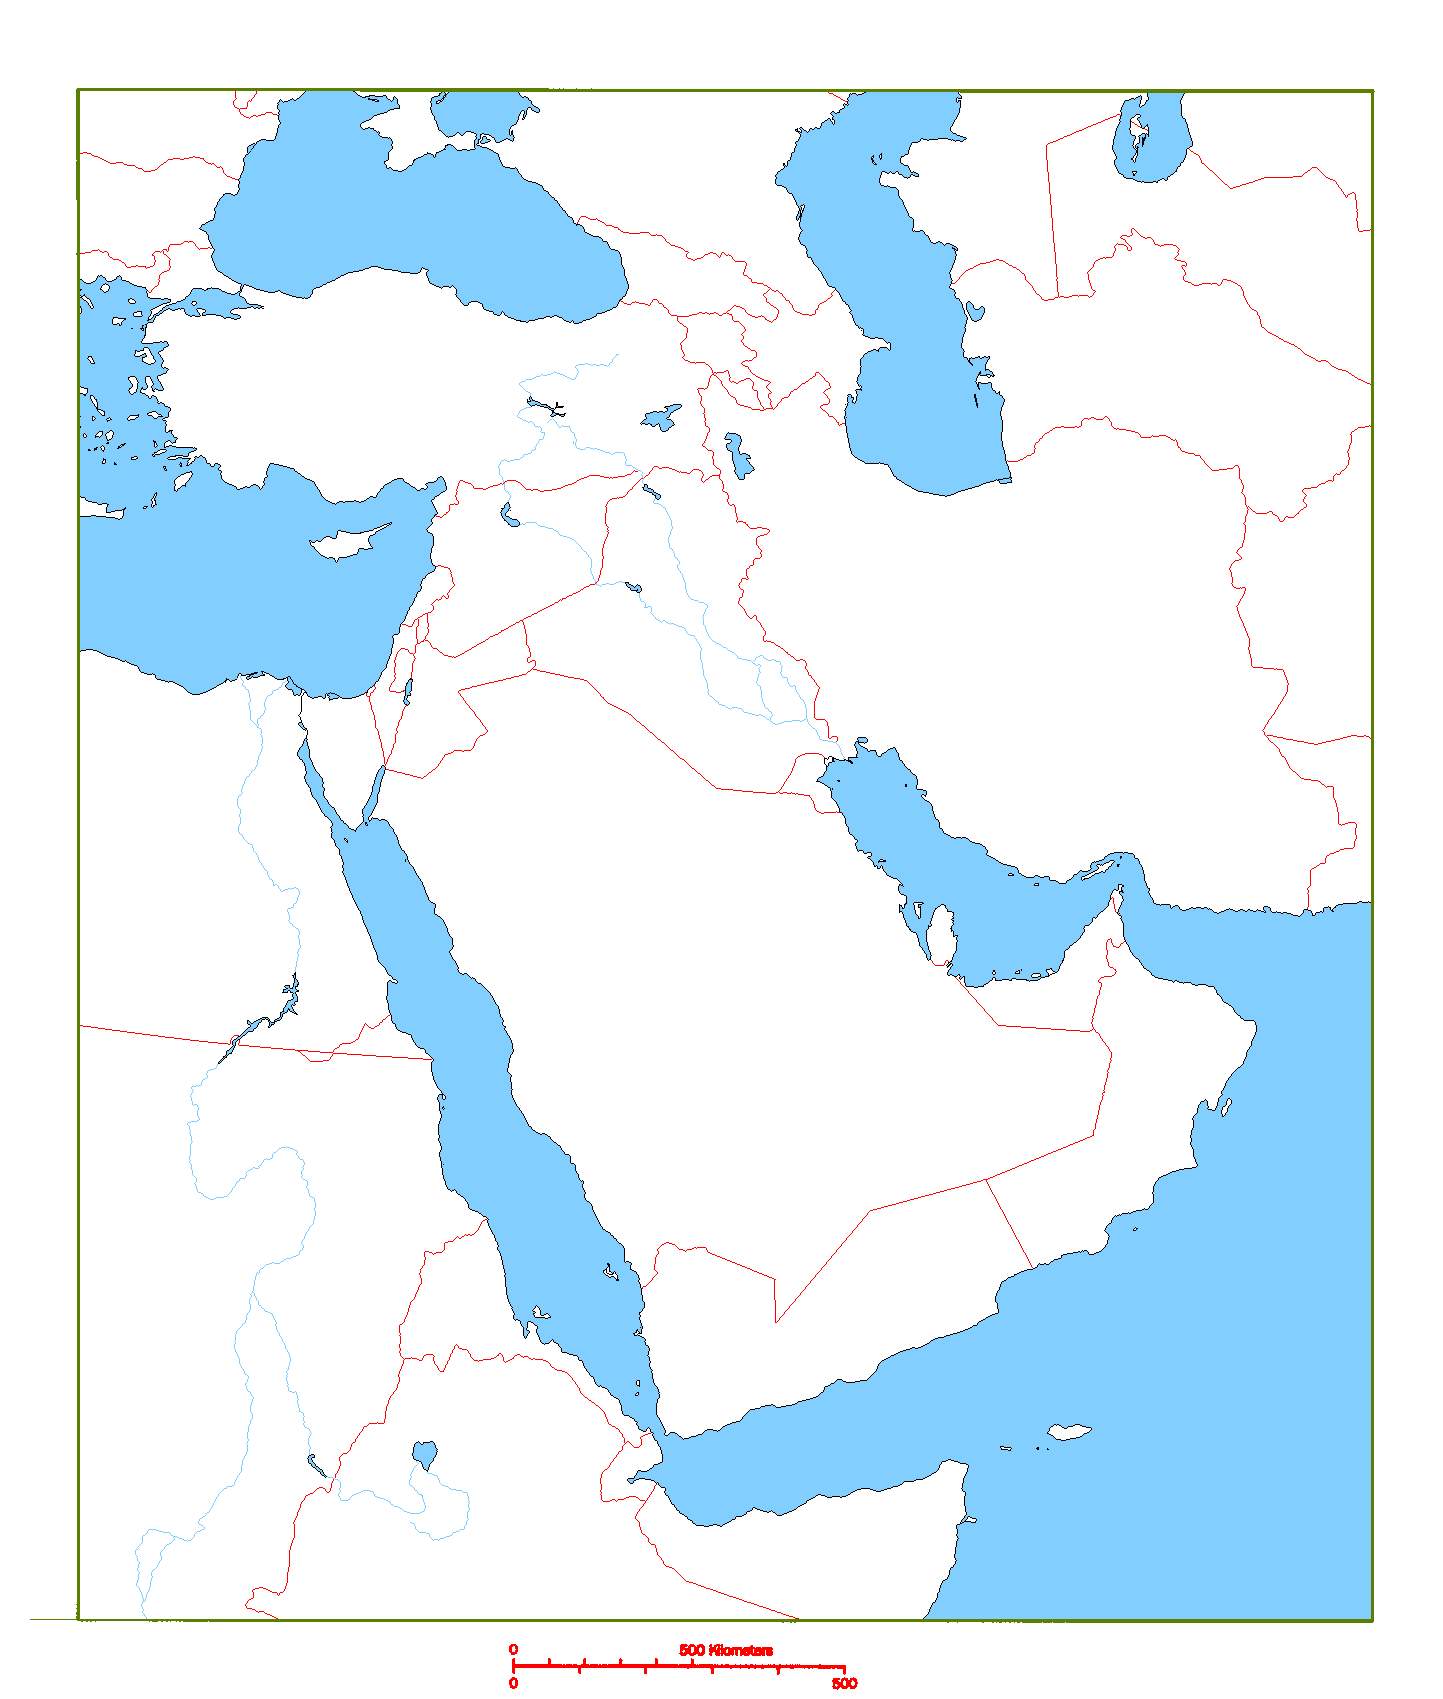 hight resolution of blank map of middle east   Middle east map